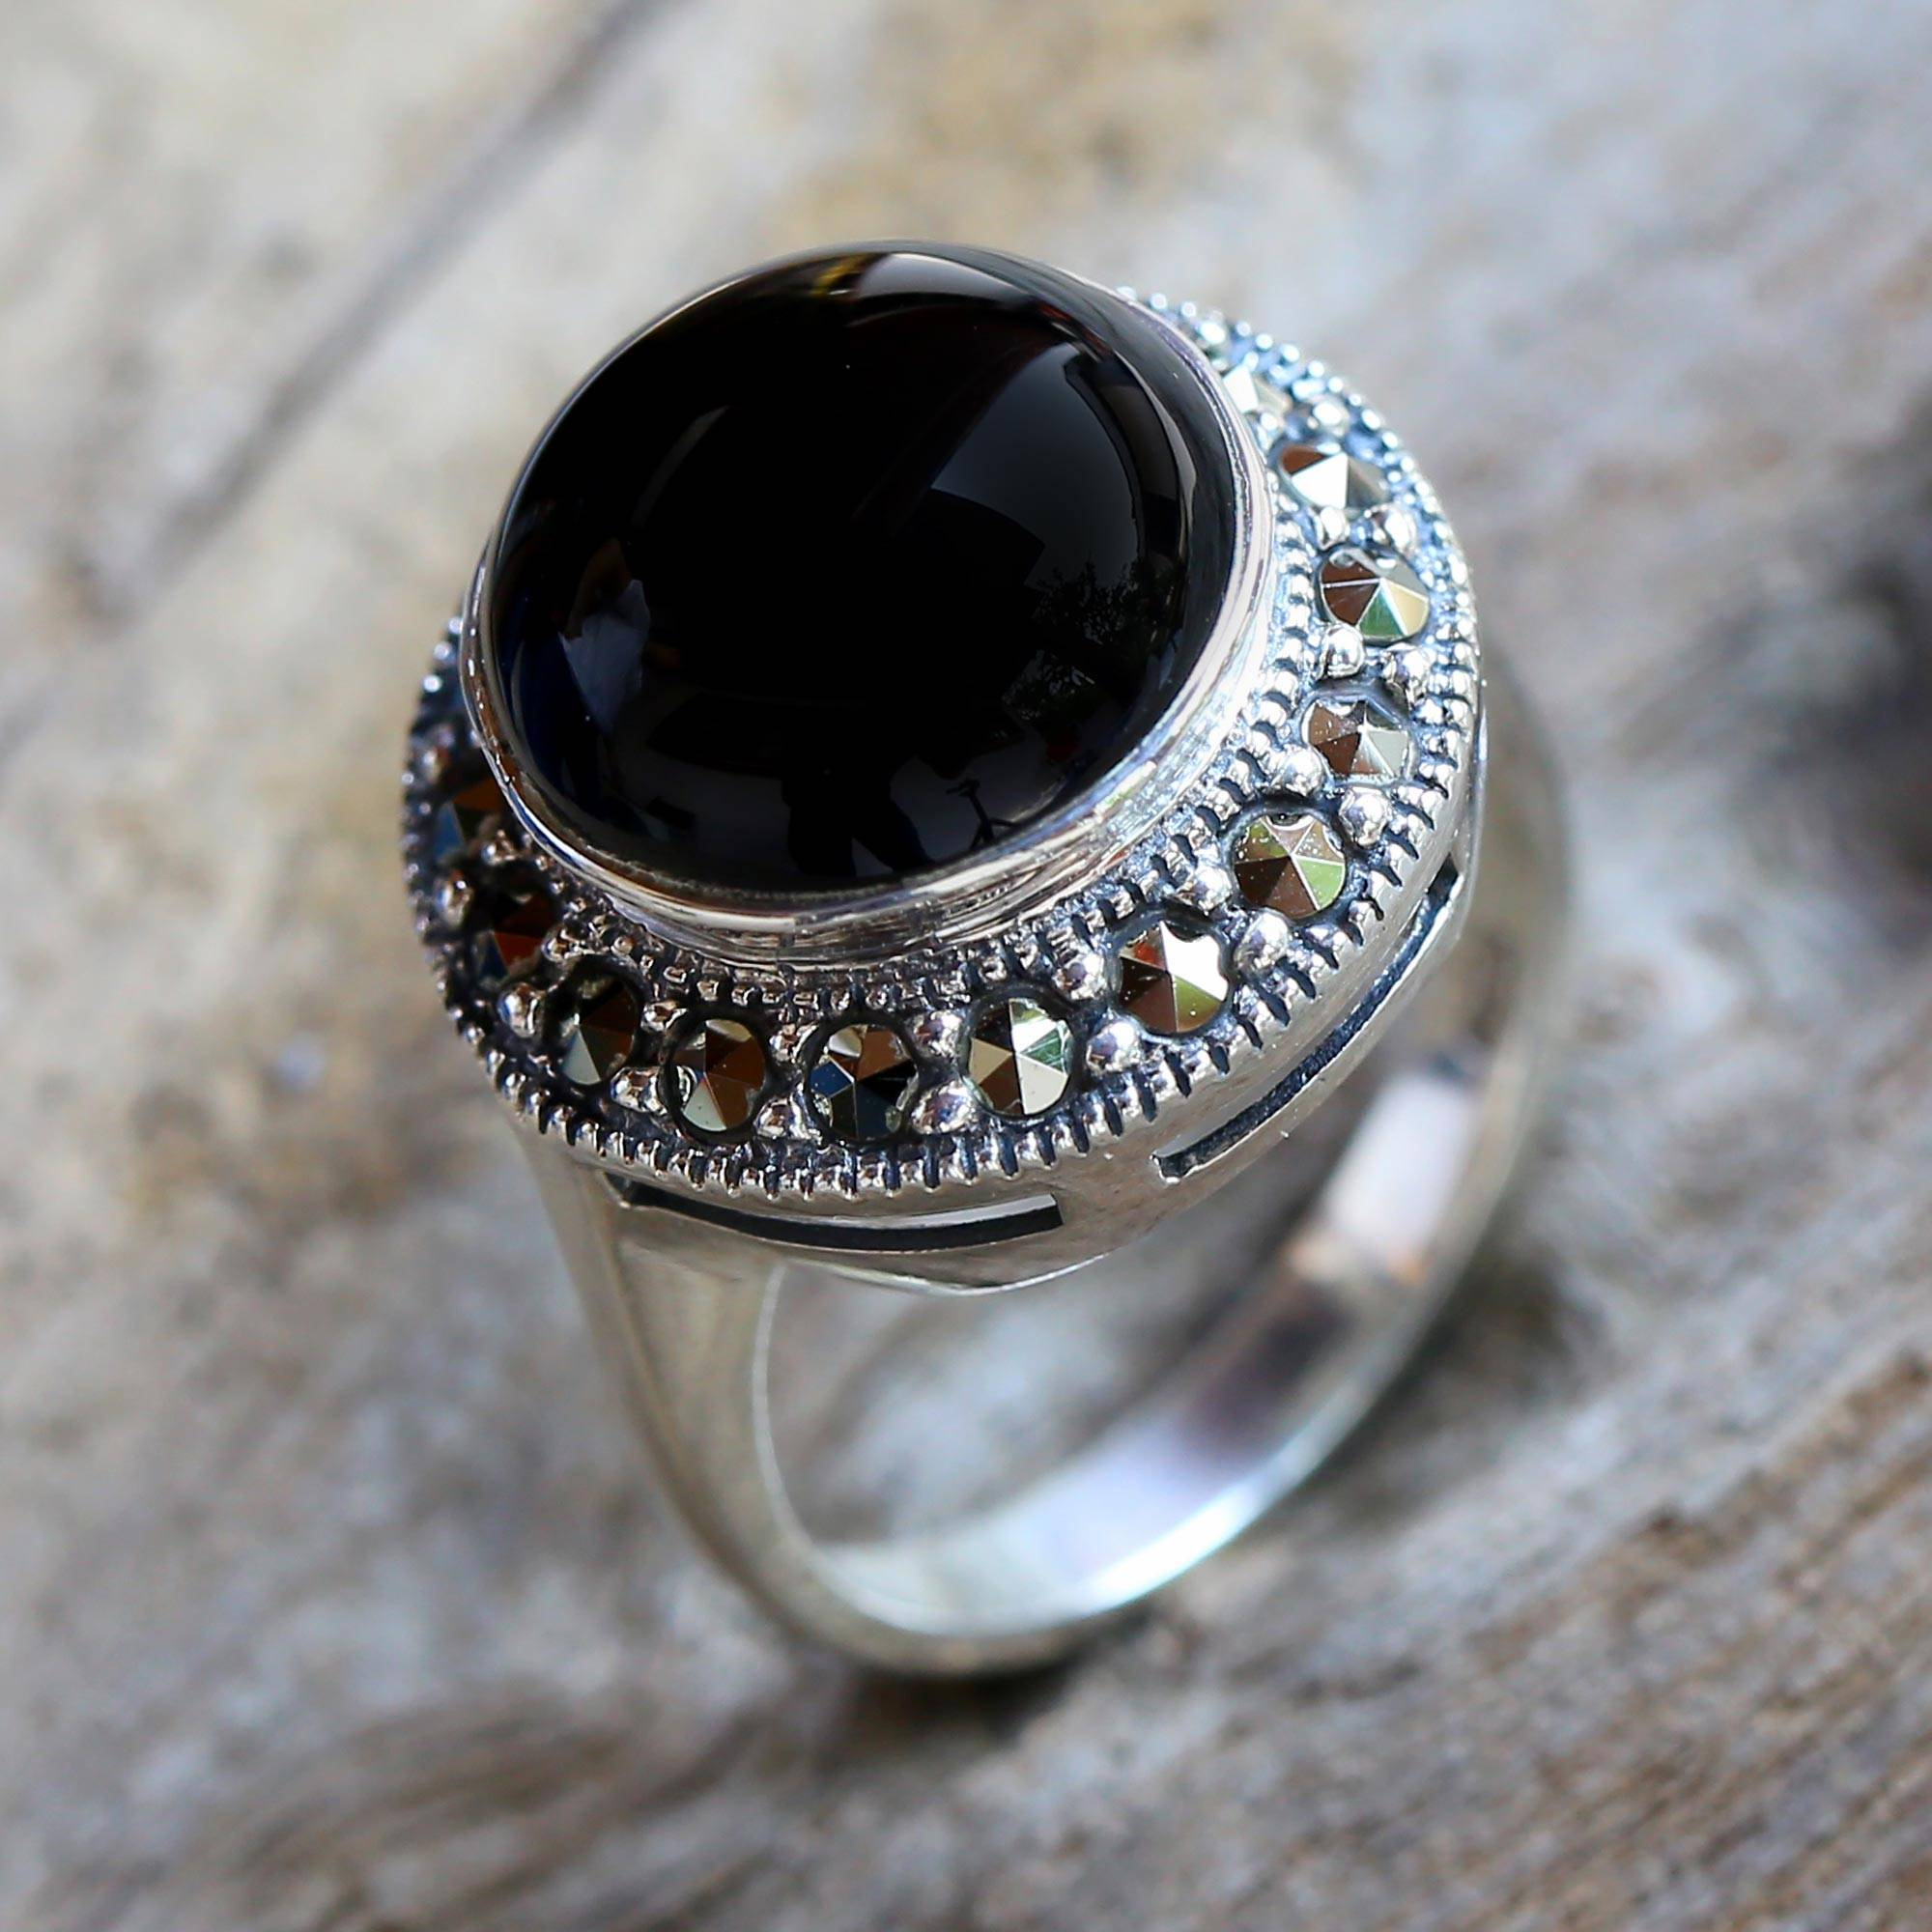 ring wedding of william alternative cut elegant white diamond engagement gold idea vintage cushion rings luxury surround son unusual collection old and onyx